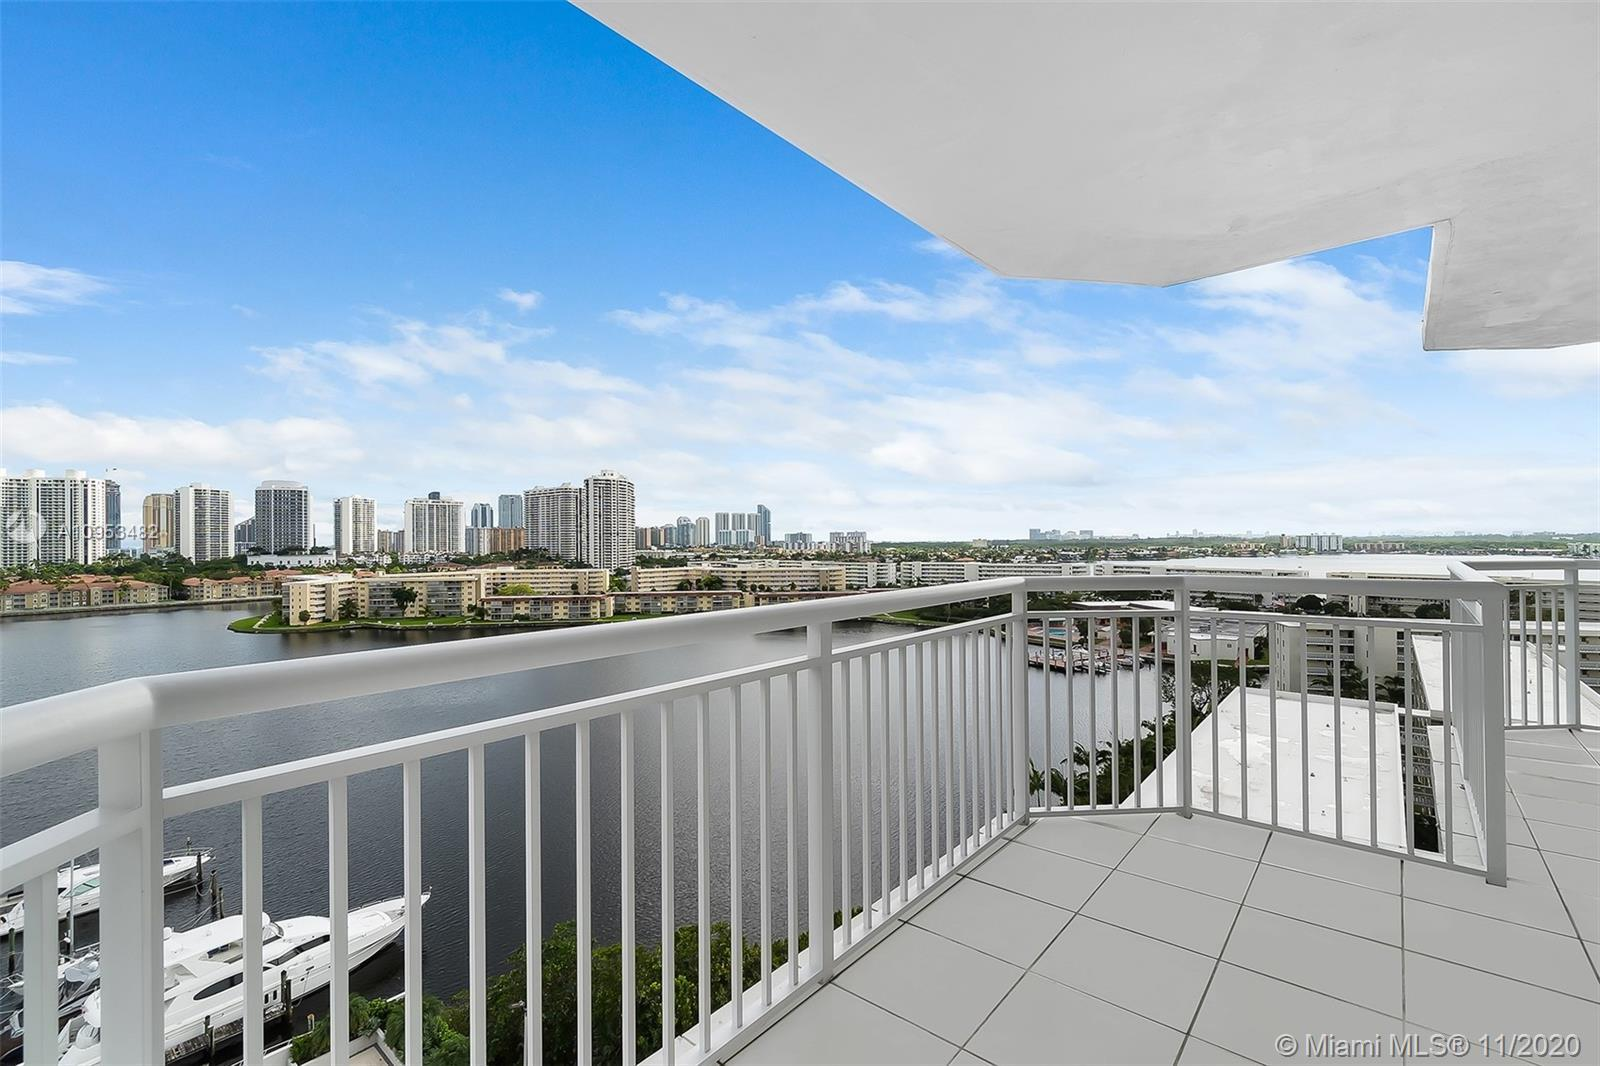 Wonderful 2 bedrooms 2 bath condo in the heart of Aventura with phenomenal views of the water. Centr